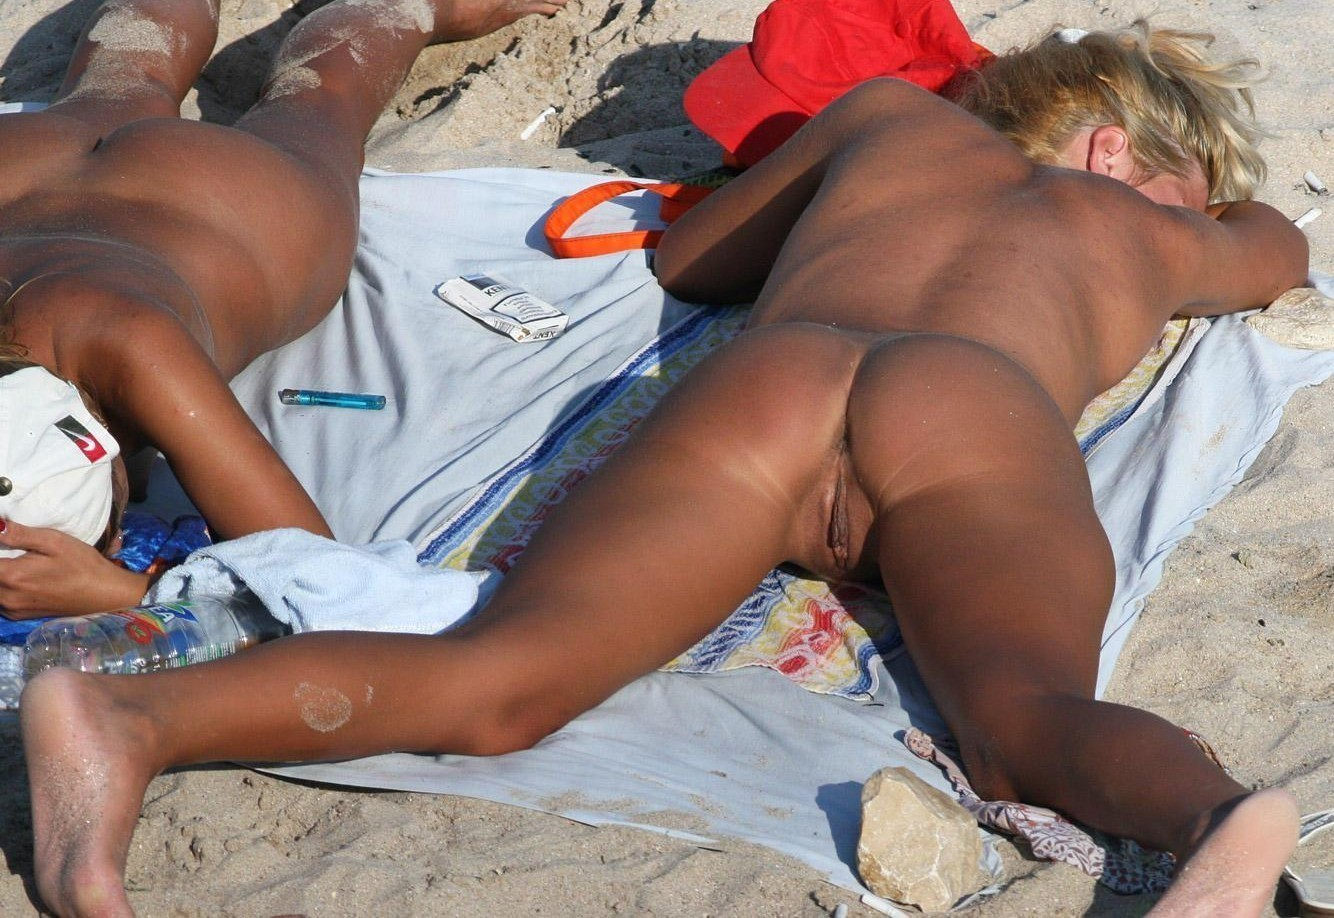 MILF friends tanning their labias on the nudist beach